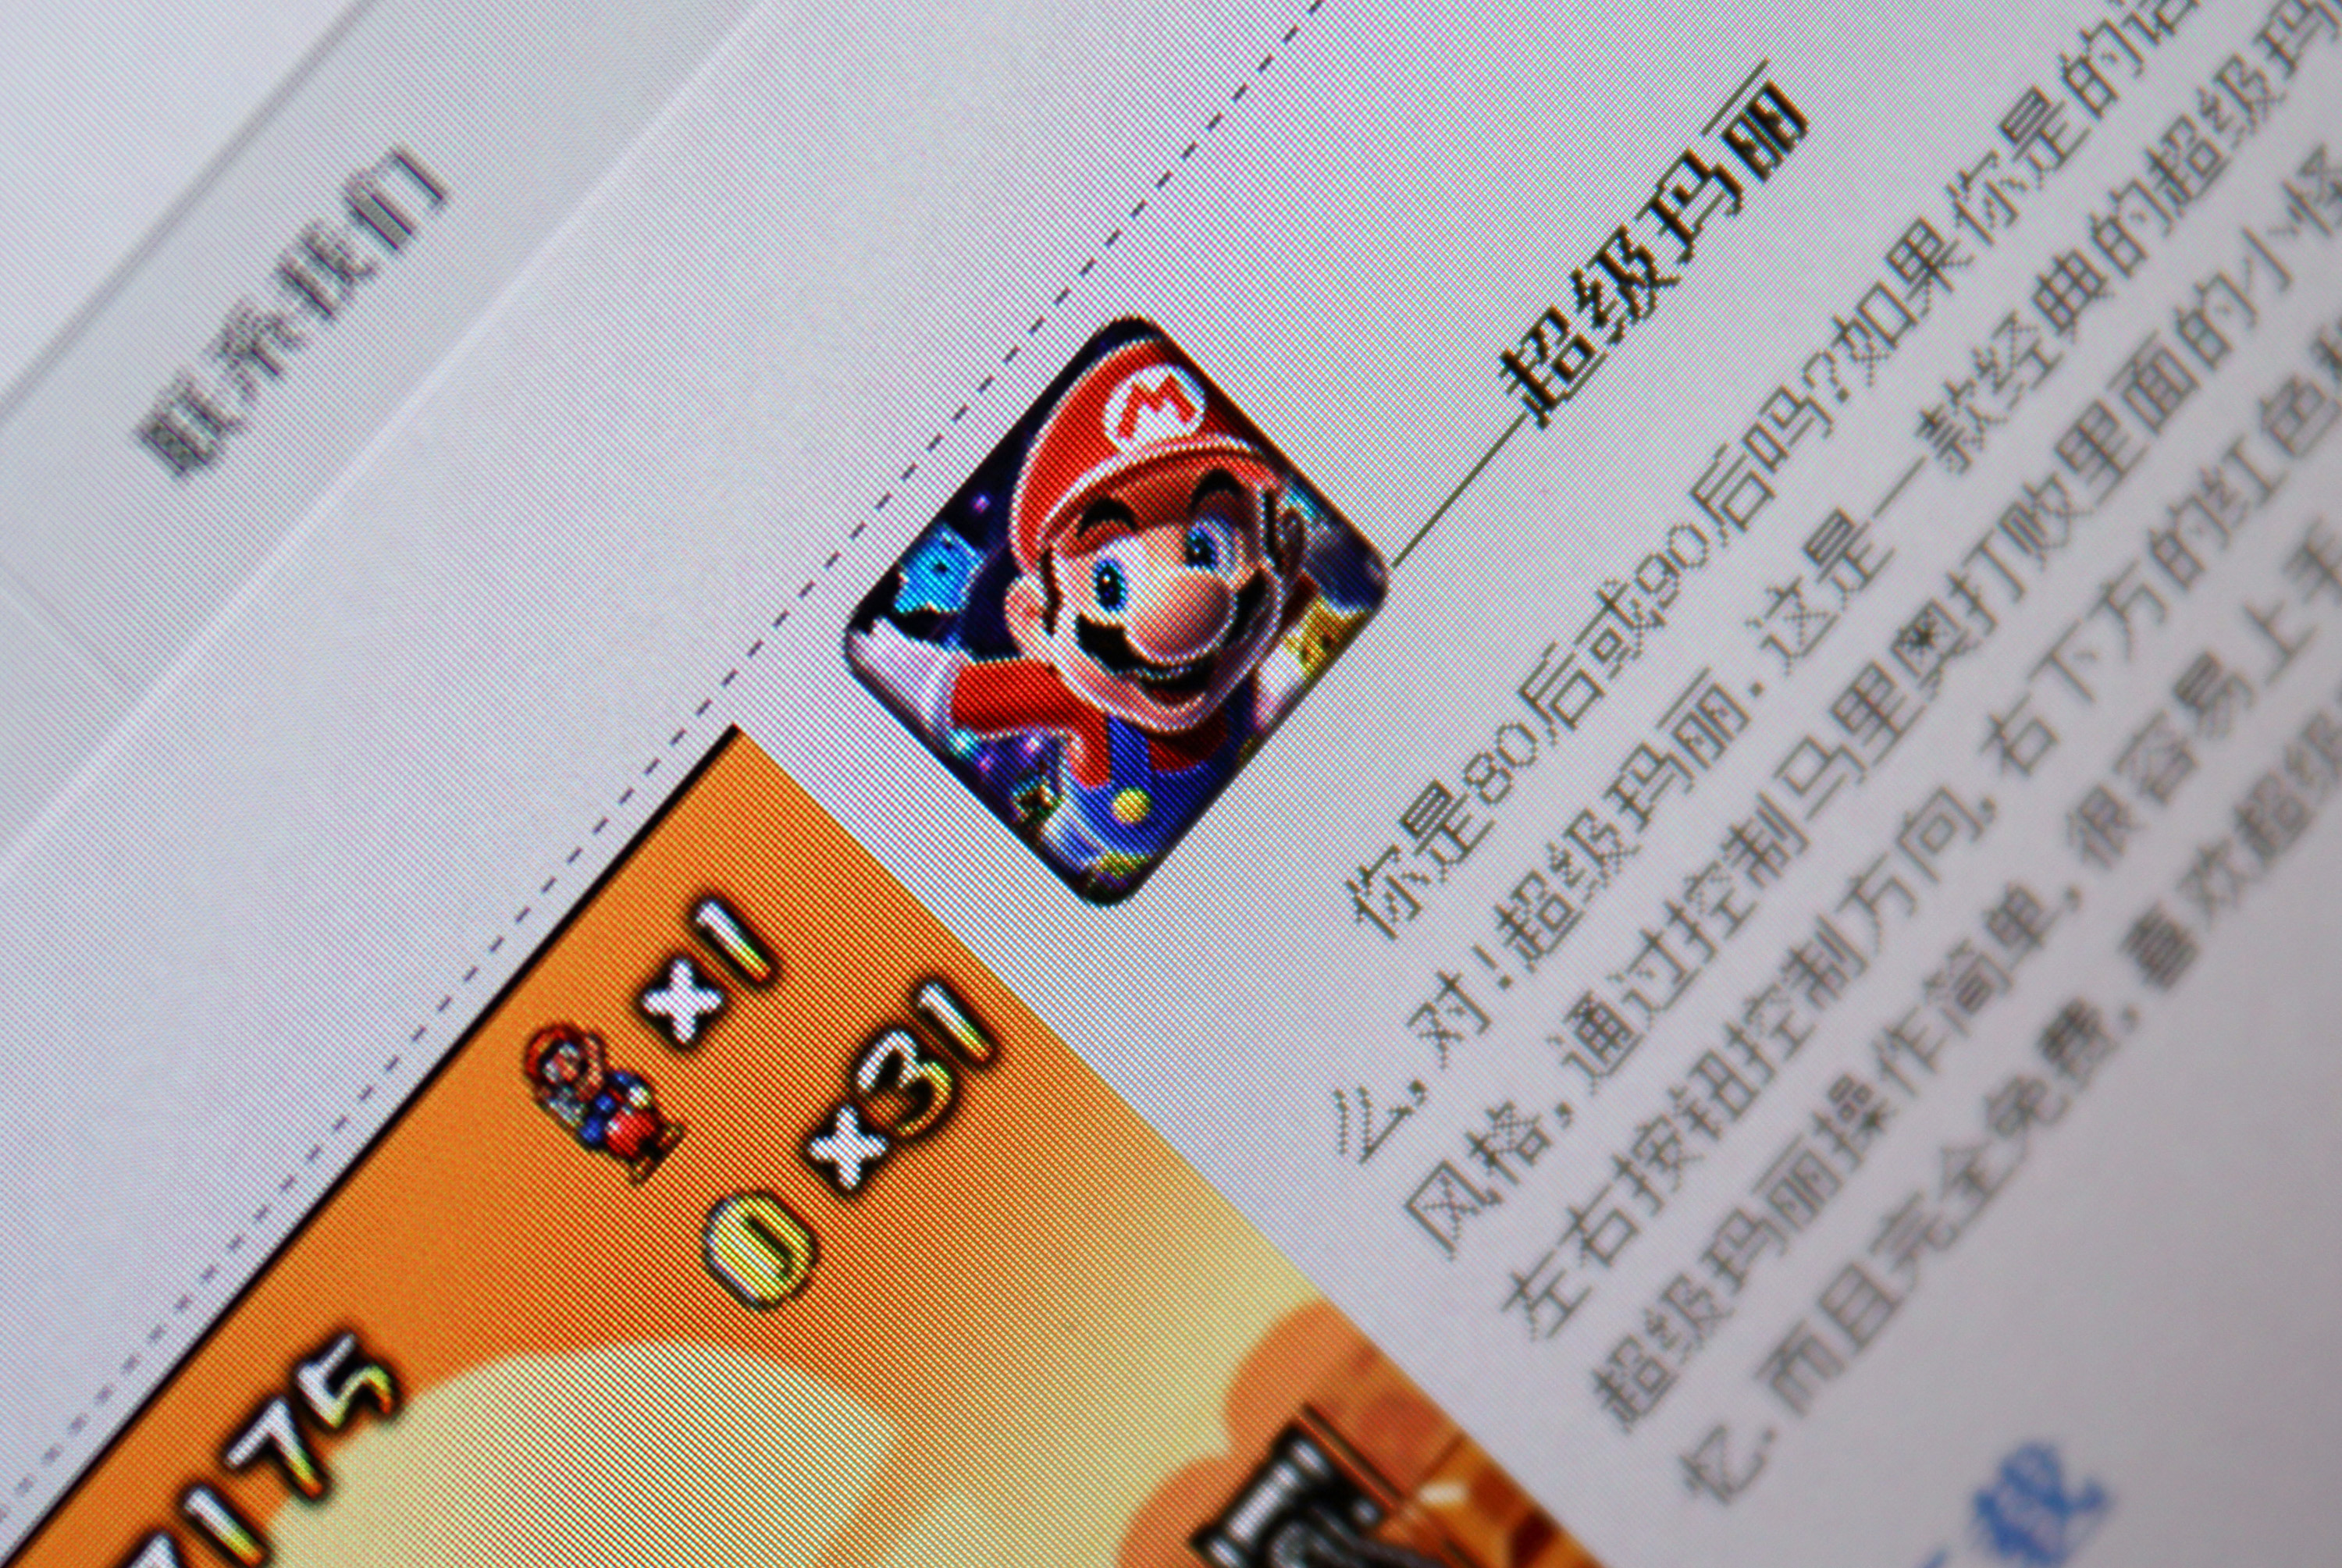 The download page for a copycat 'Mario' game on the Beijing Flyfish Technology Co. website is shown on a smartphone.   BLOOMBERG